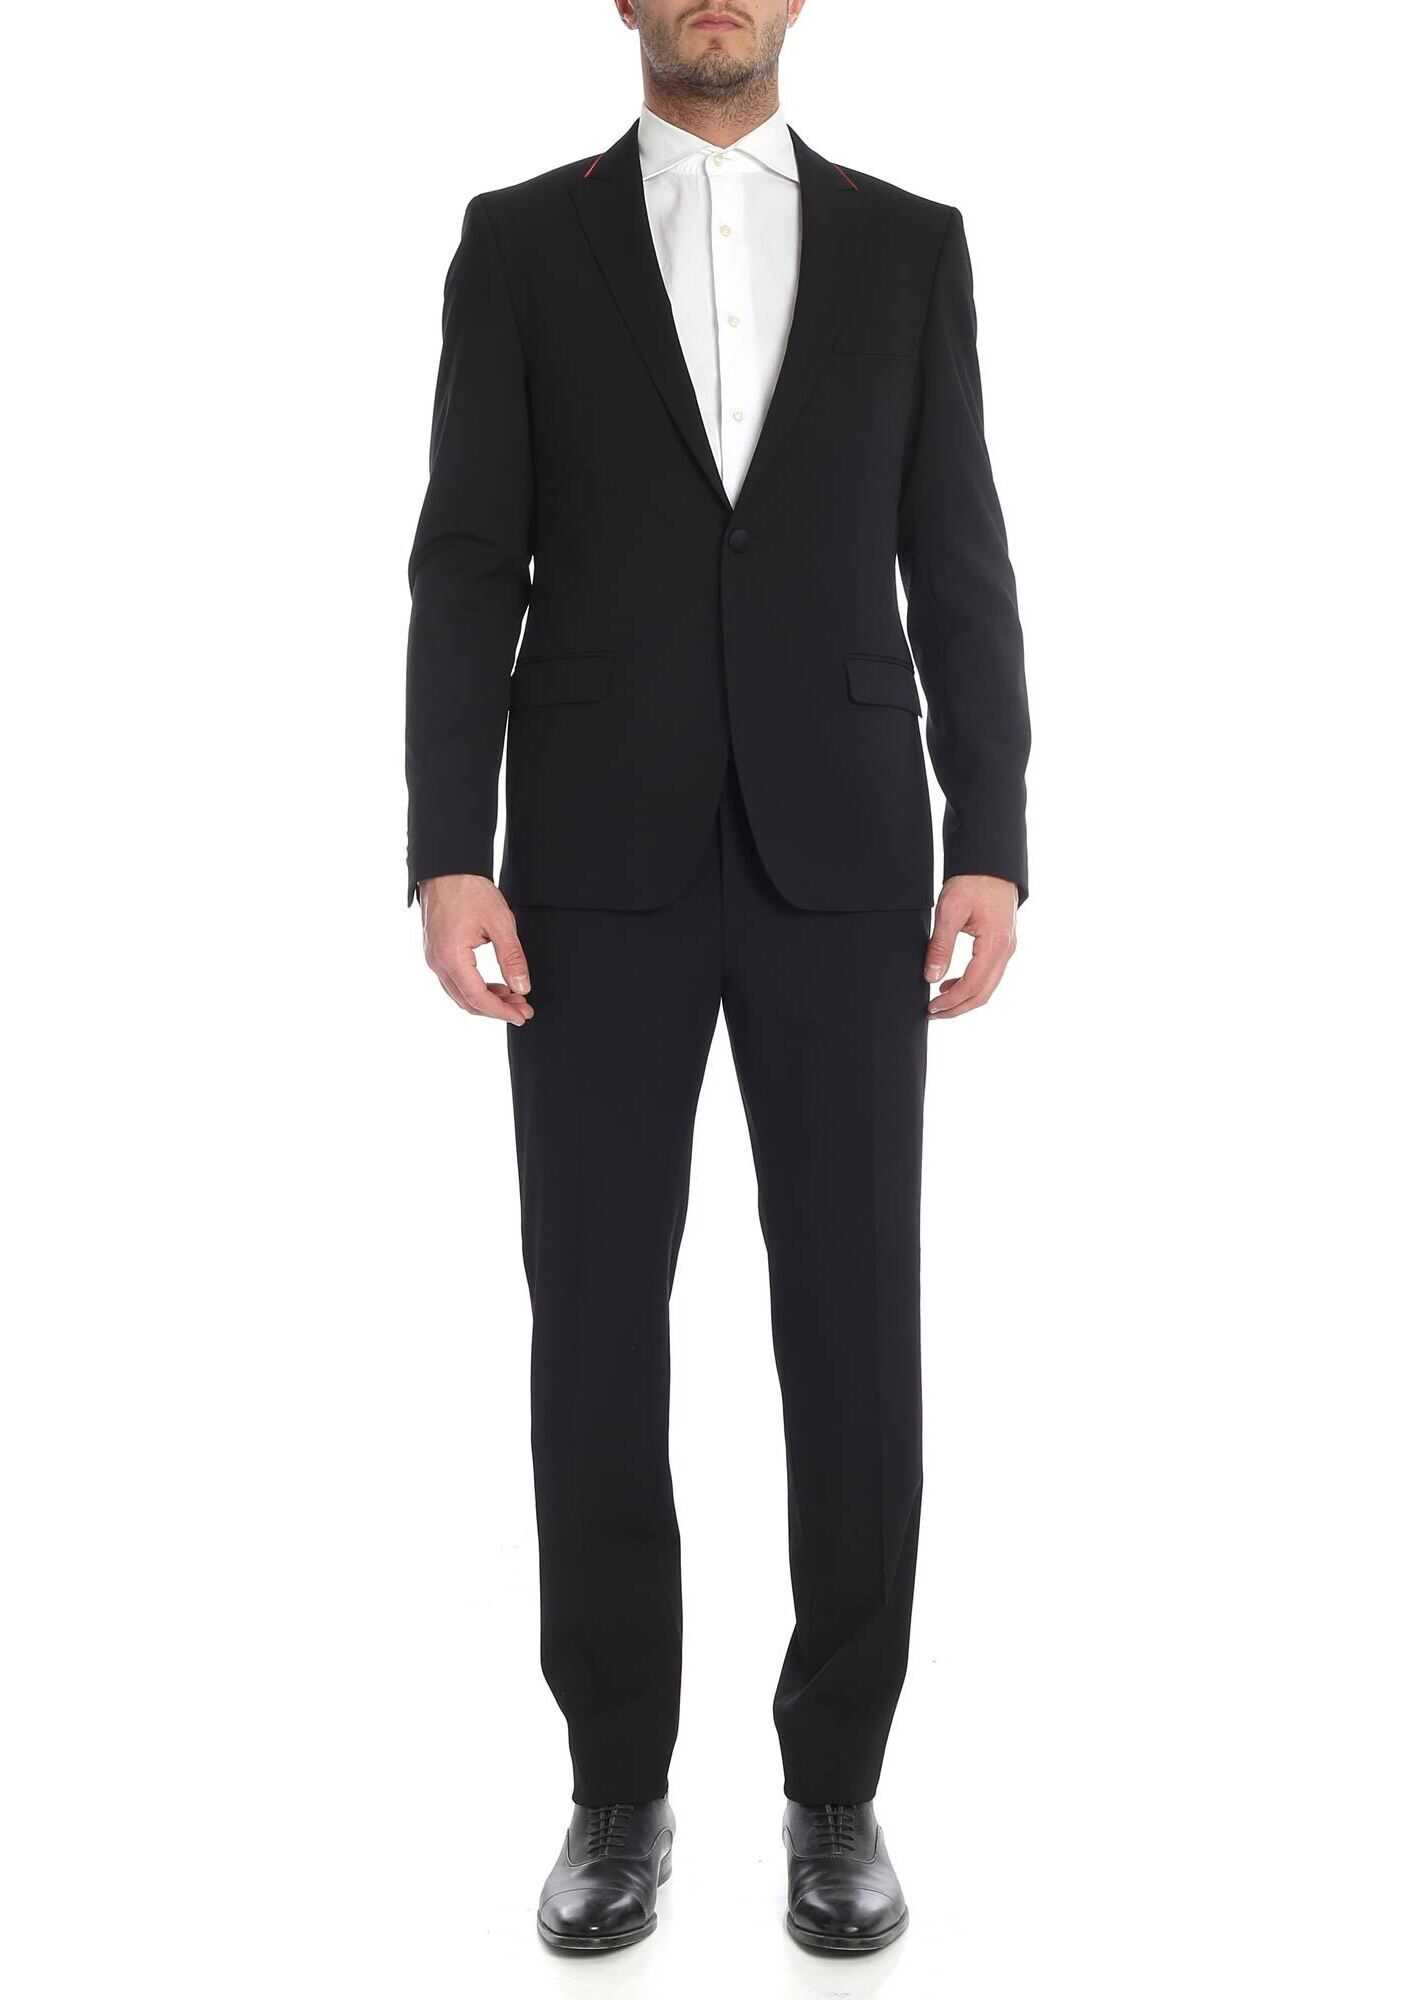 Karl Lagerfeld Single-Breasted Suit With Single Button Black imagine